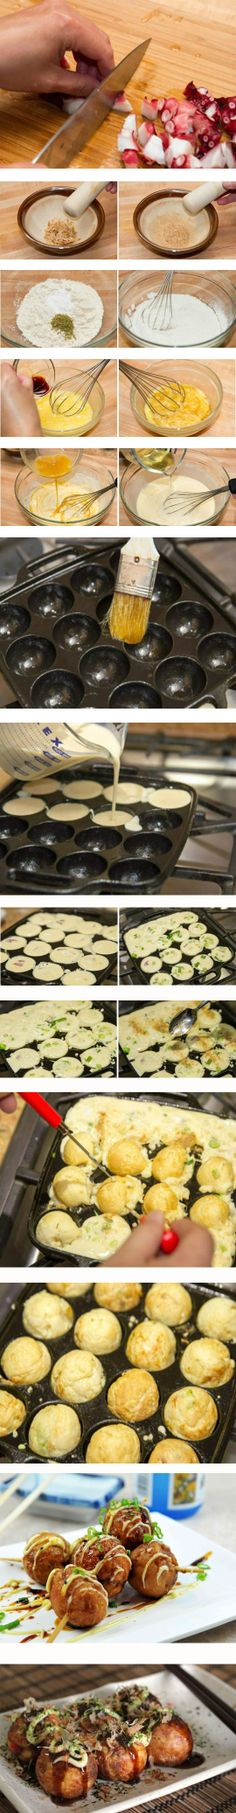 Takoyaki – Baked octopus dumplings-Japanese Food Recipes-My Cooking Chapter